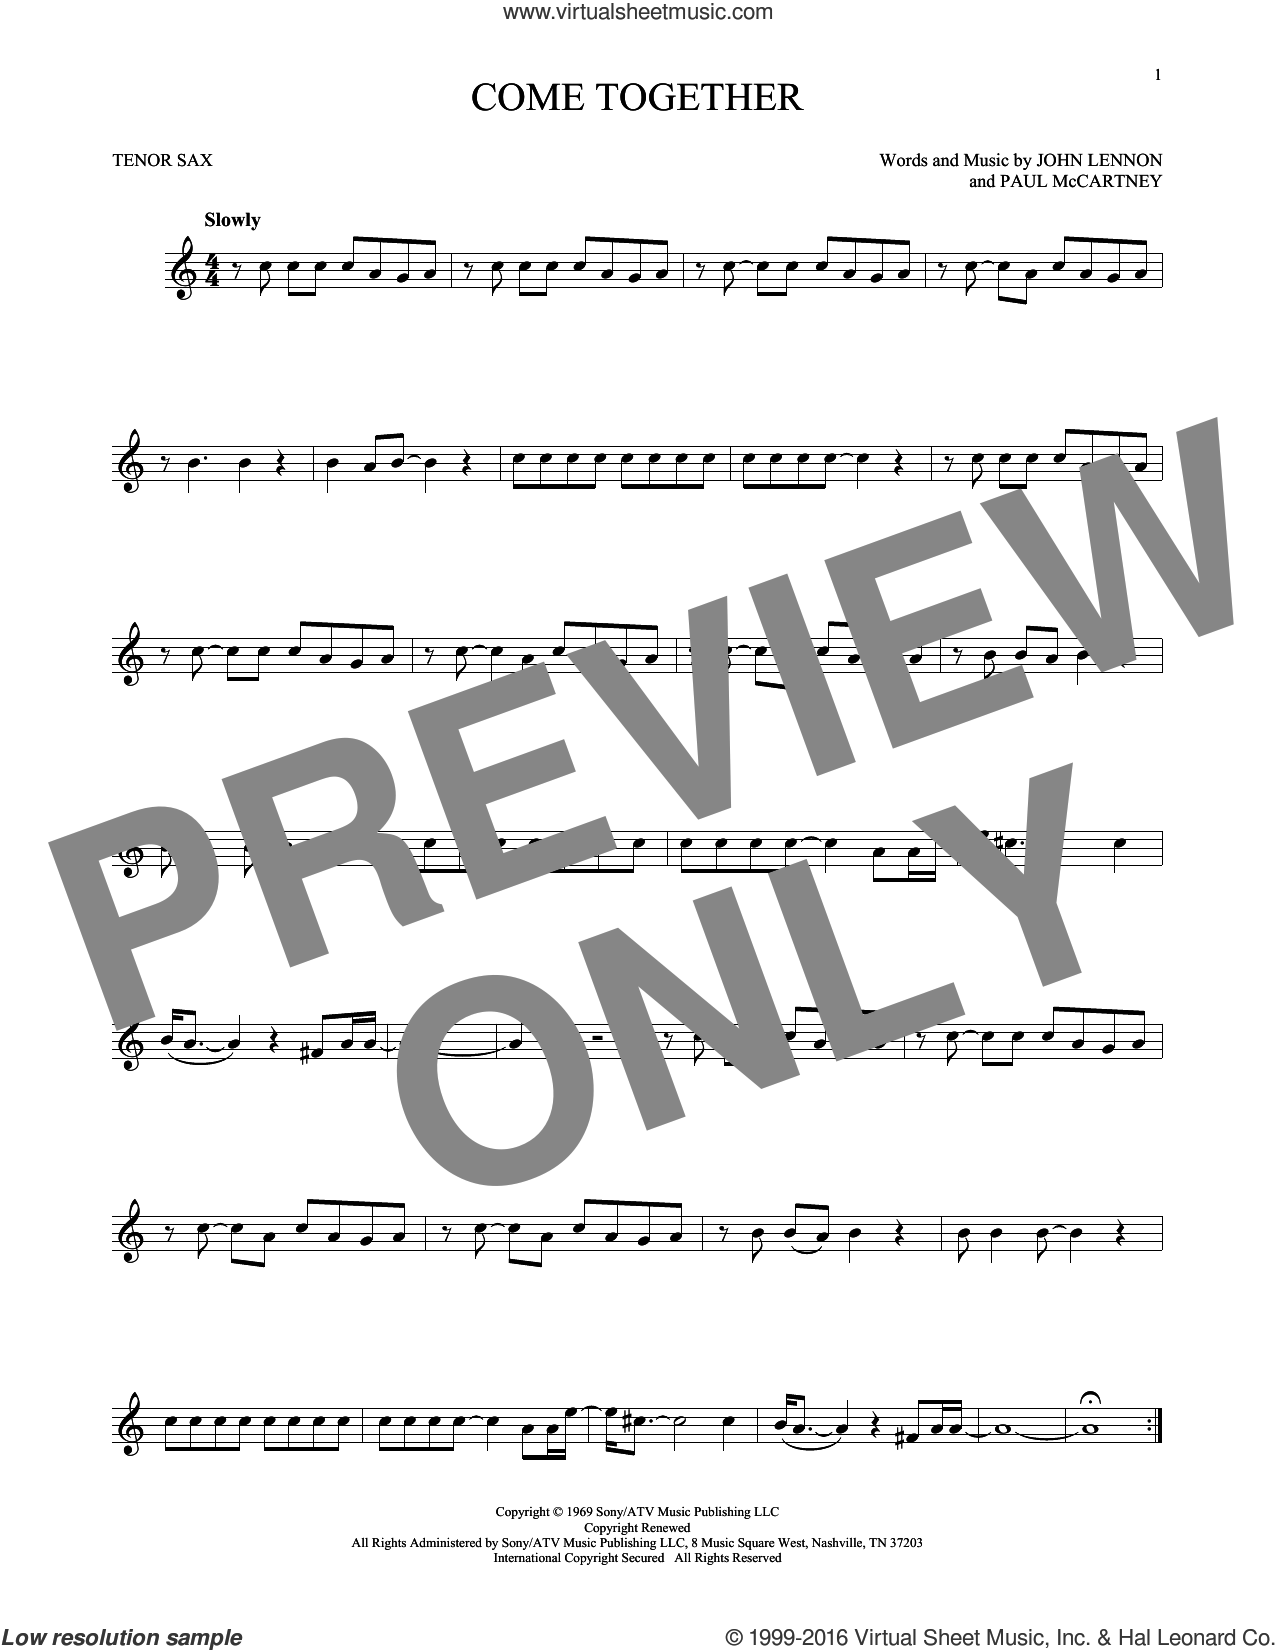 Come Together sheet music for tenor saxophone solo by The Beatles, John Lennon and Paul McCartney, intermediate skill level